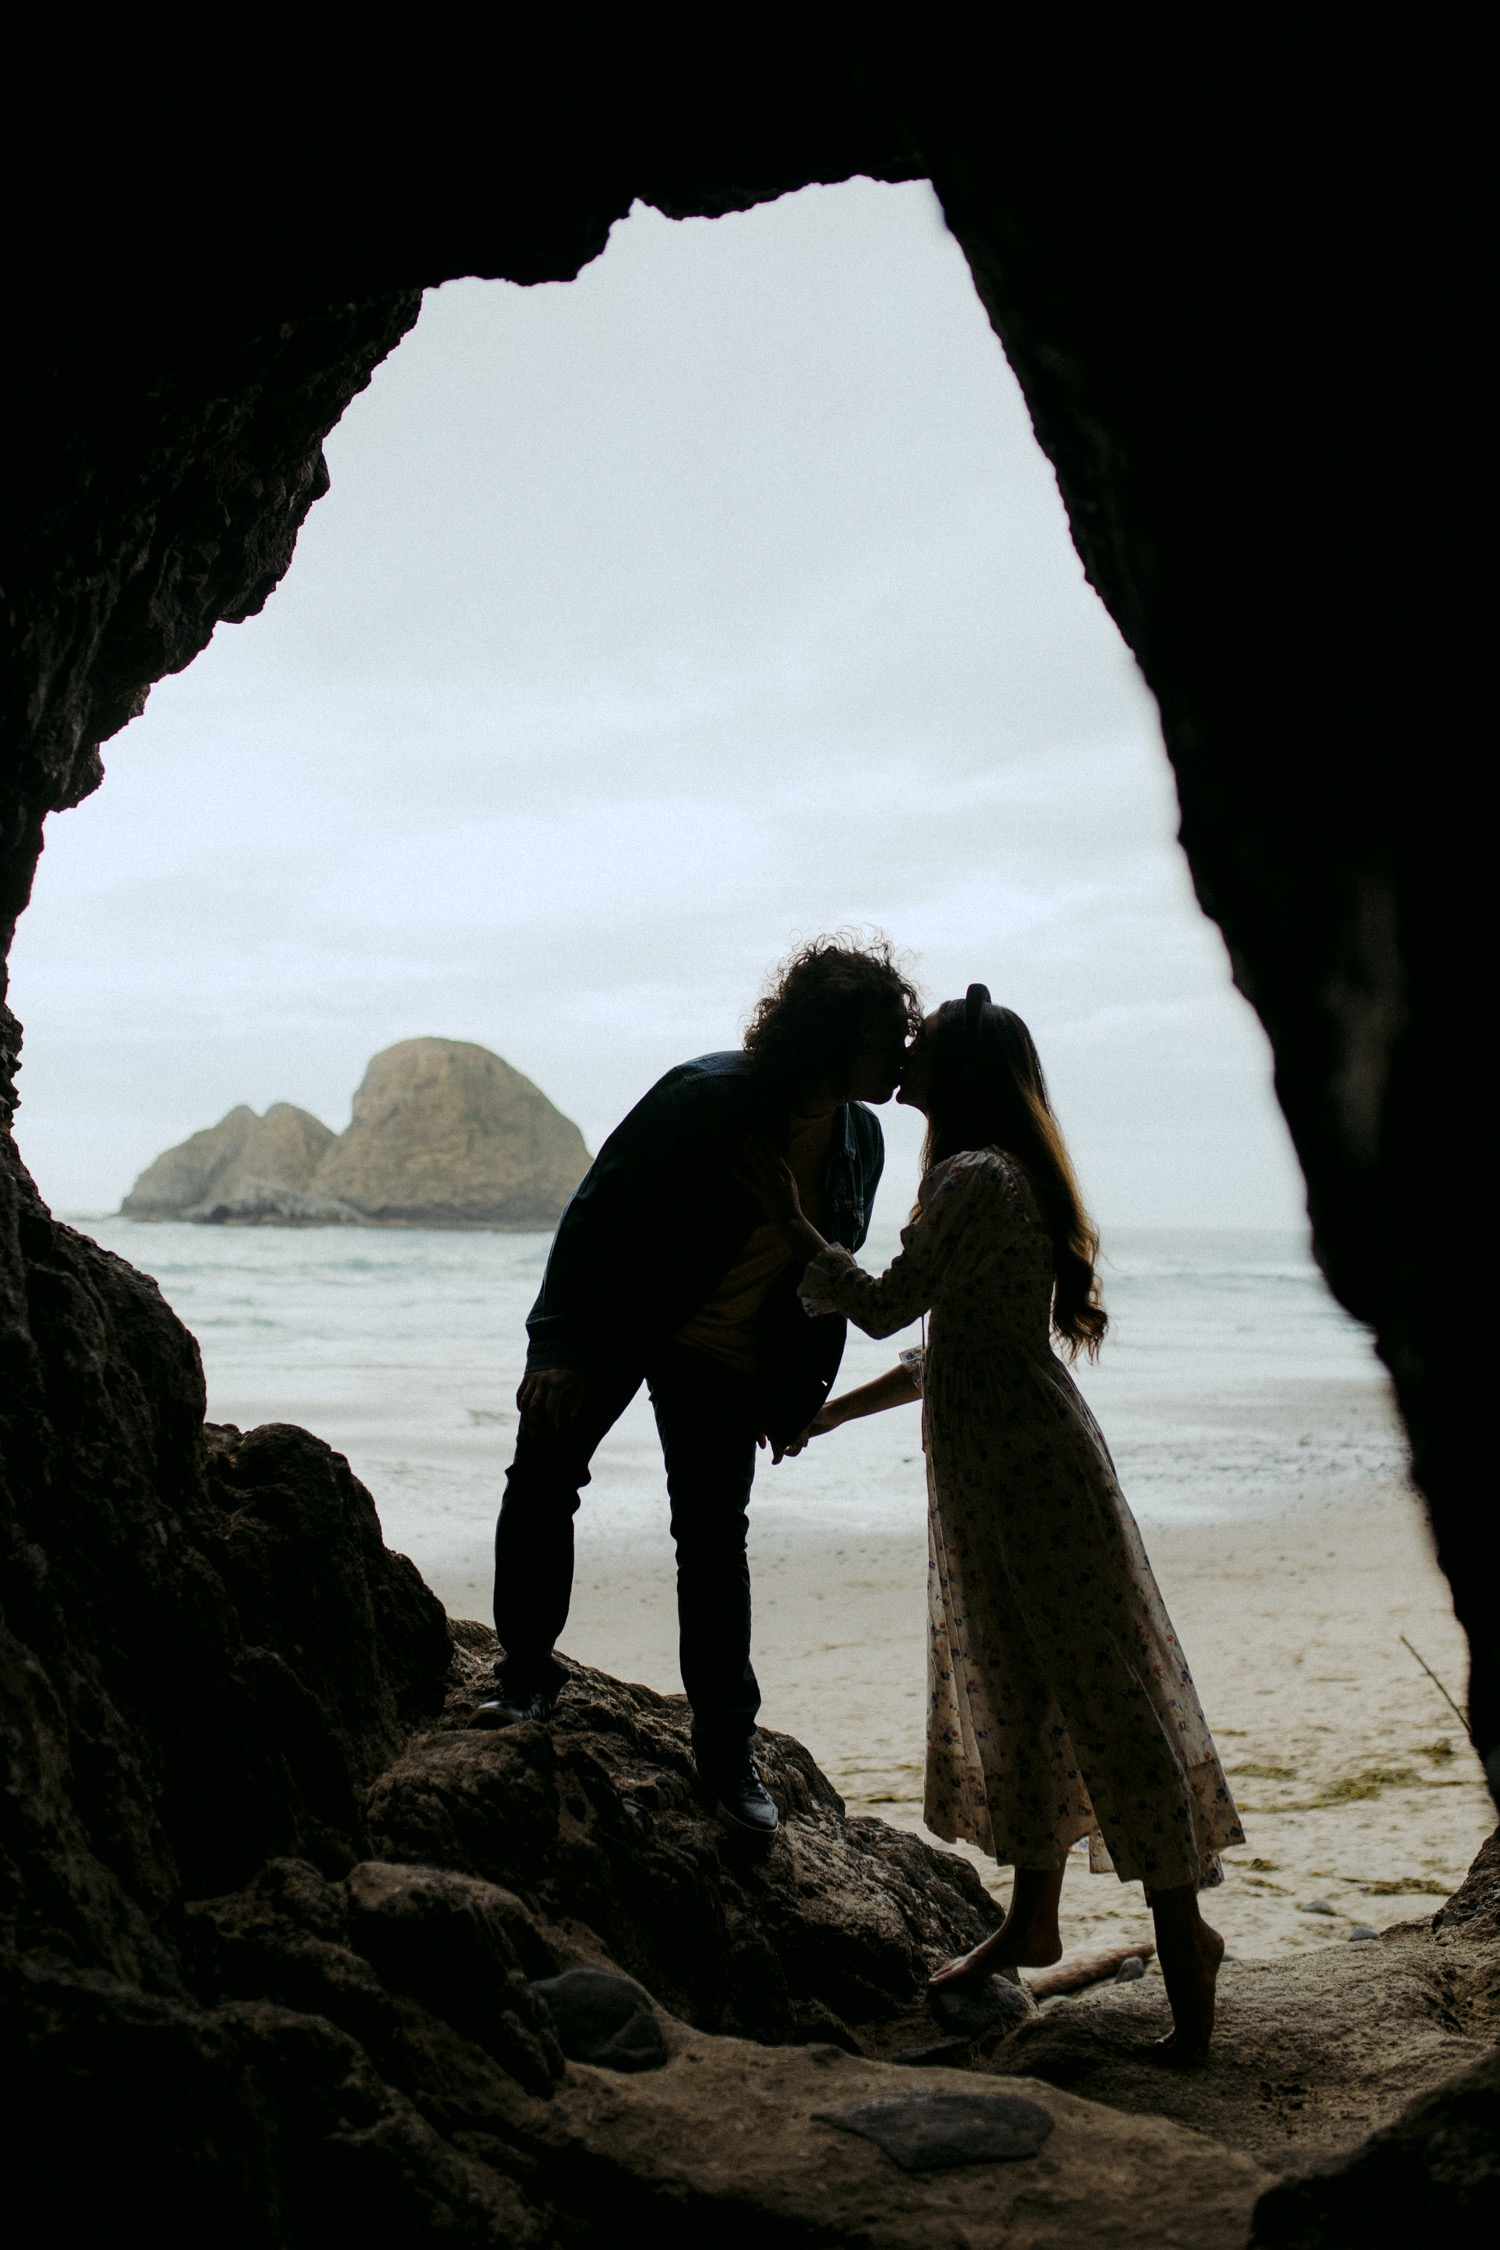 Evelyn + marcello - Oceanside, Oregon